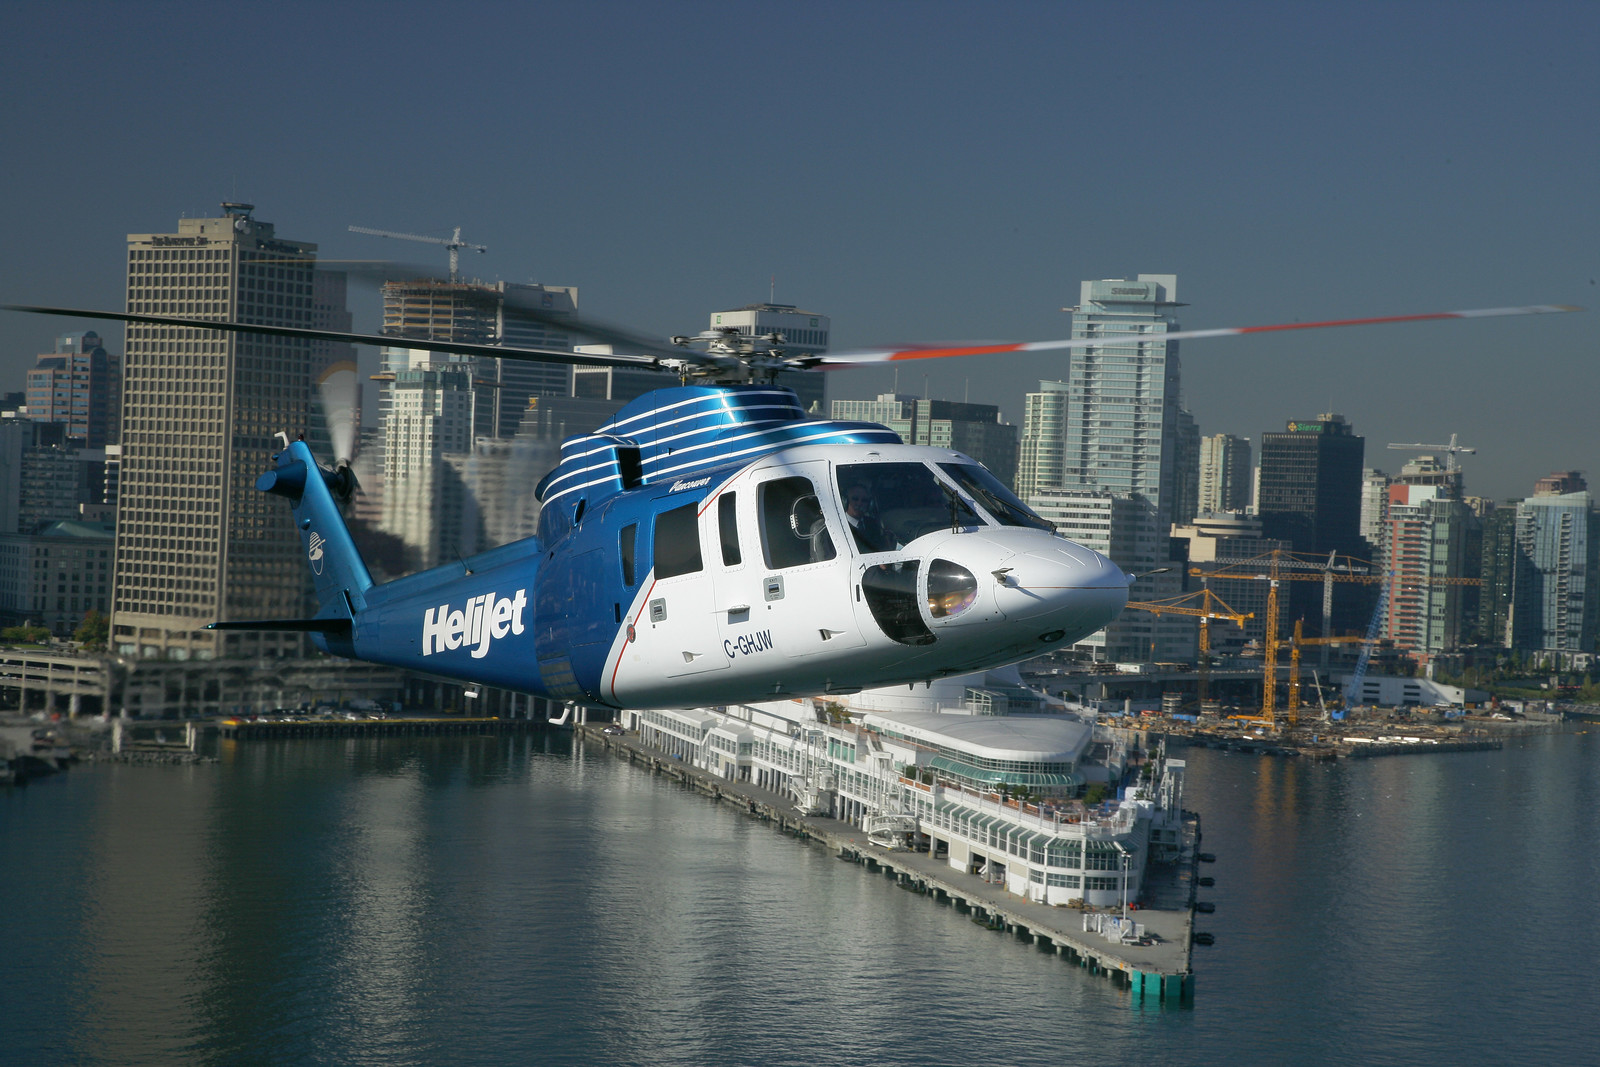 Helijet is replacing its older S-76 models with newer model S-76C++ helicopters. Heath Moffatt Photo